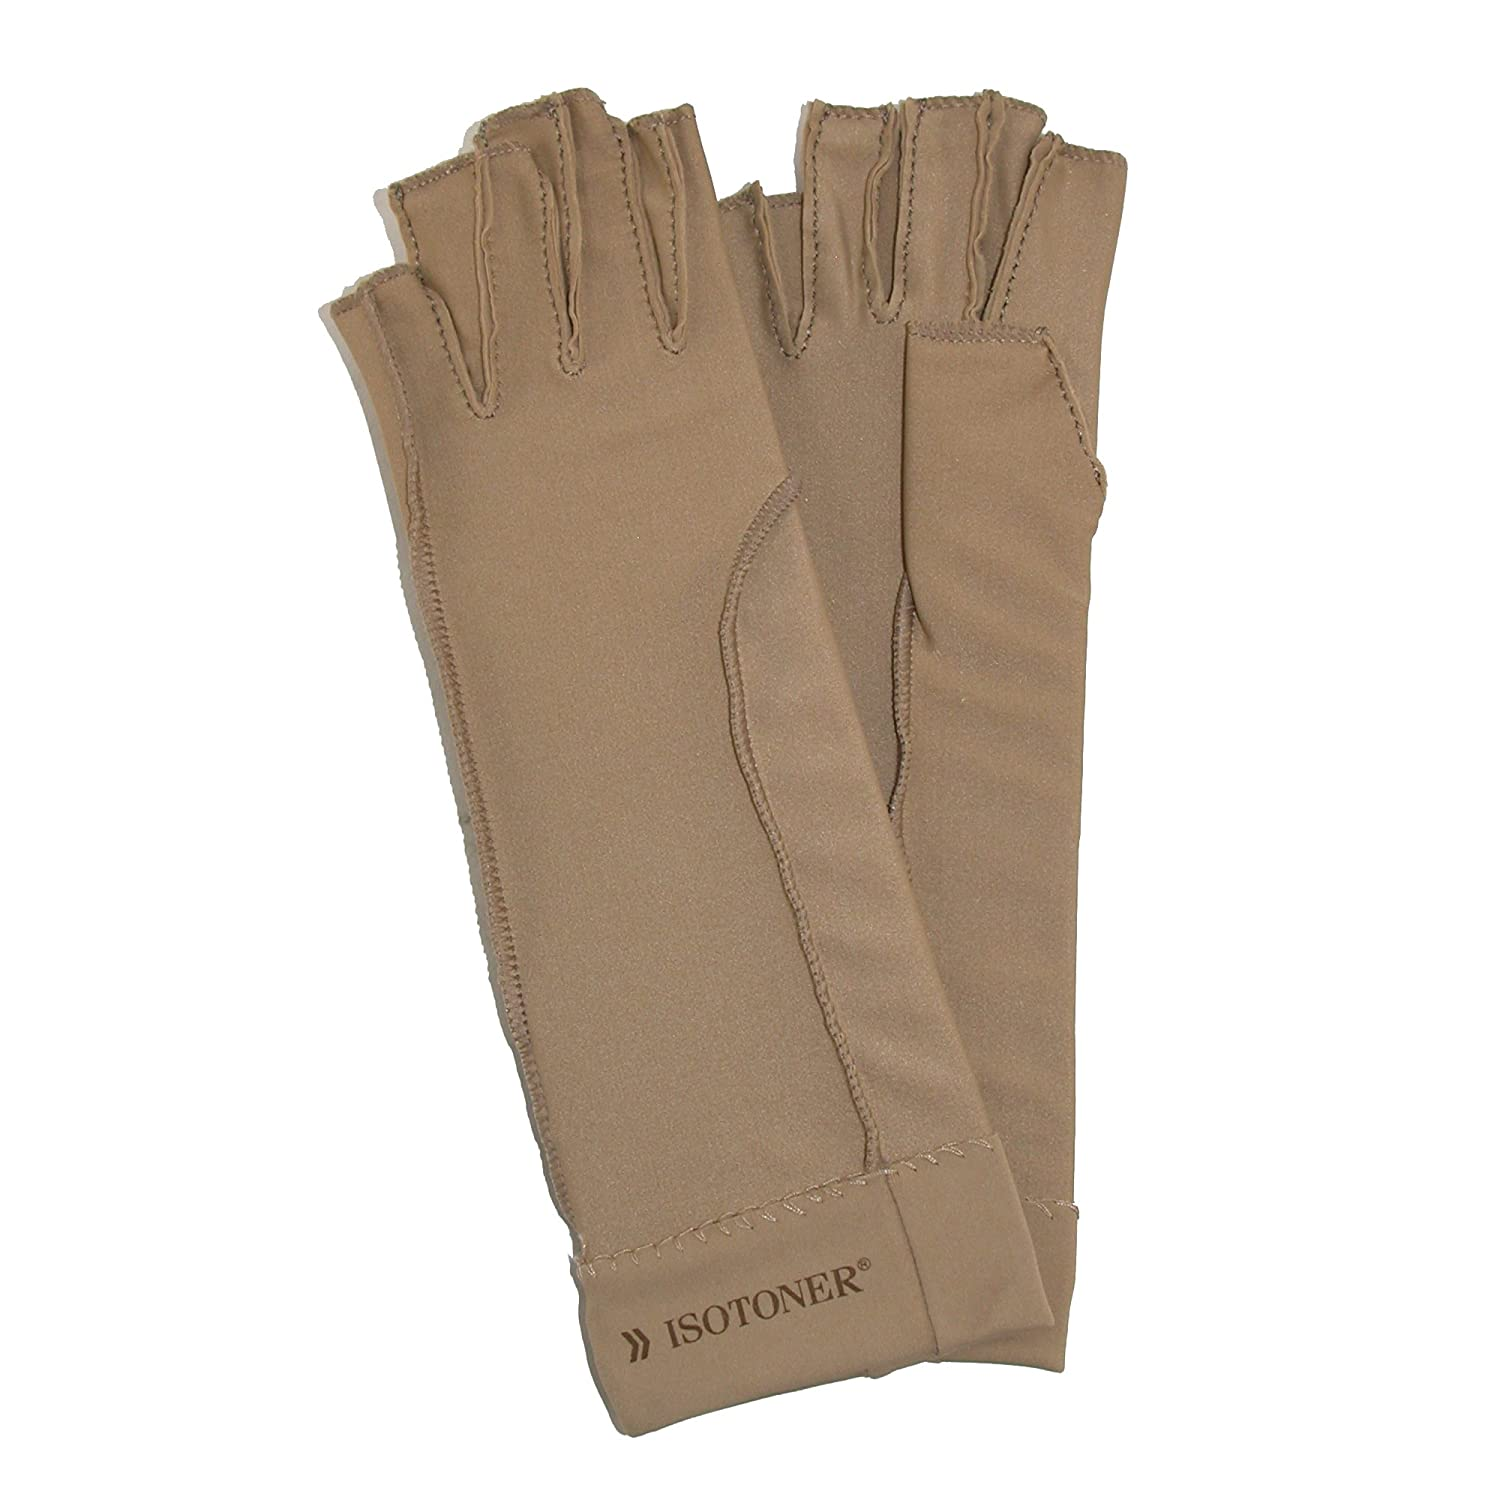 Motorcycle gloves to prevent numbness - Amazon Com Isotoner Therapeutic Compression Gloves Health Personal Care